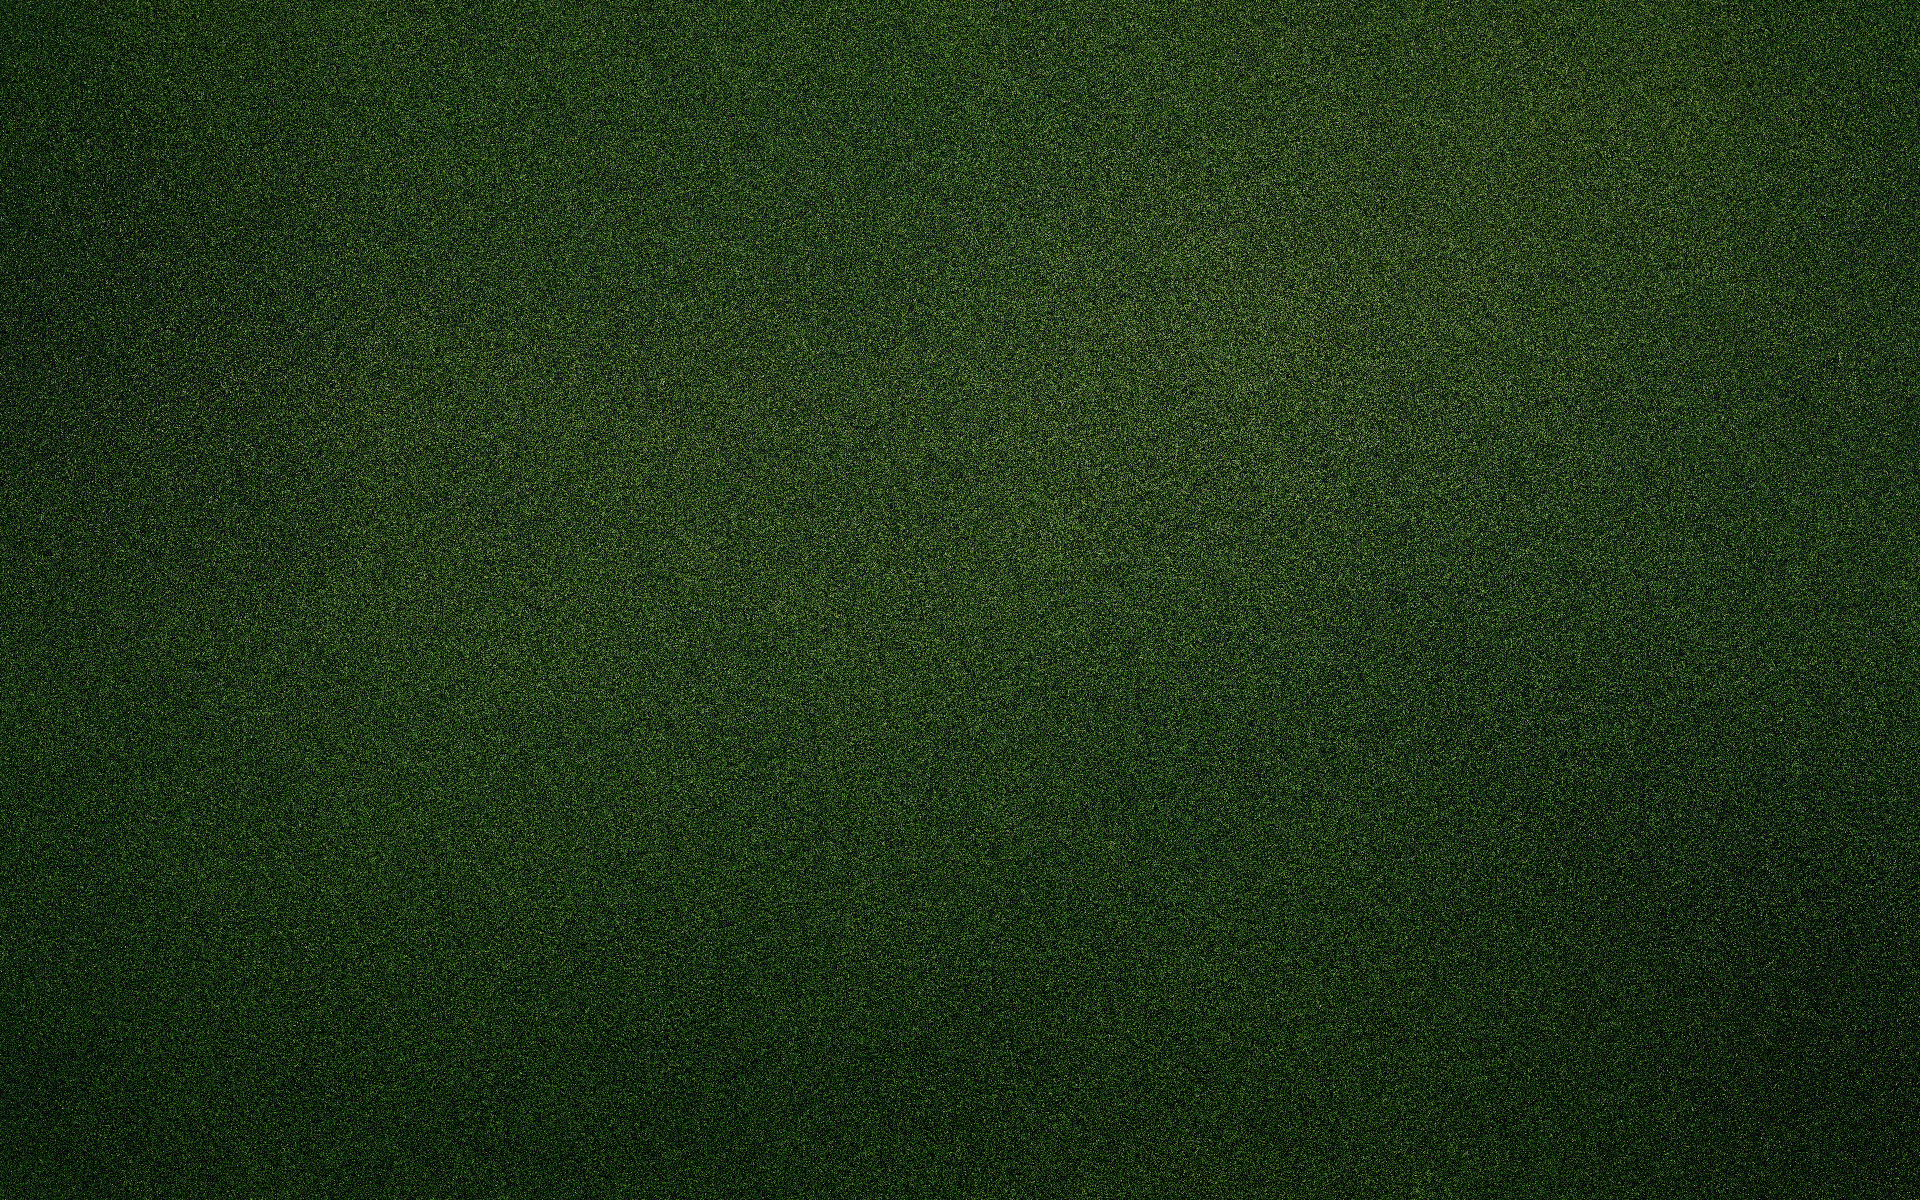 Dark green wallpaper 5 Green Giant Design Build